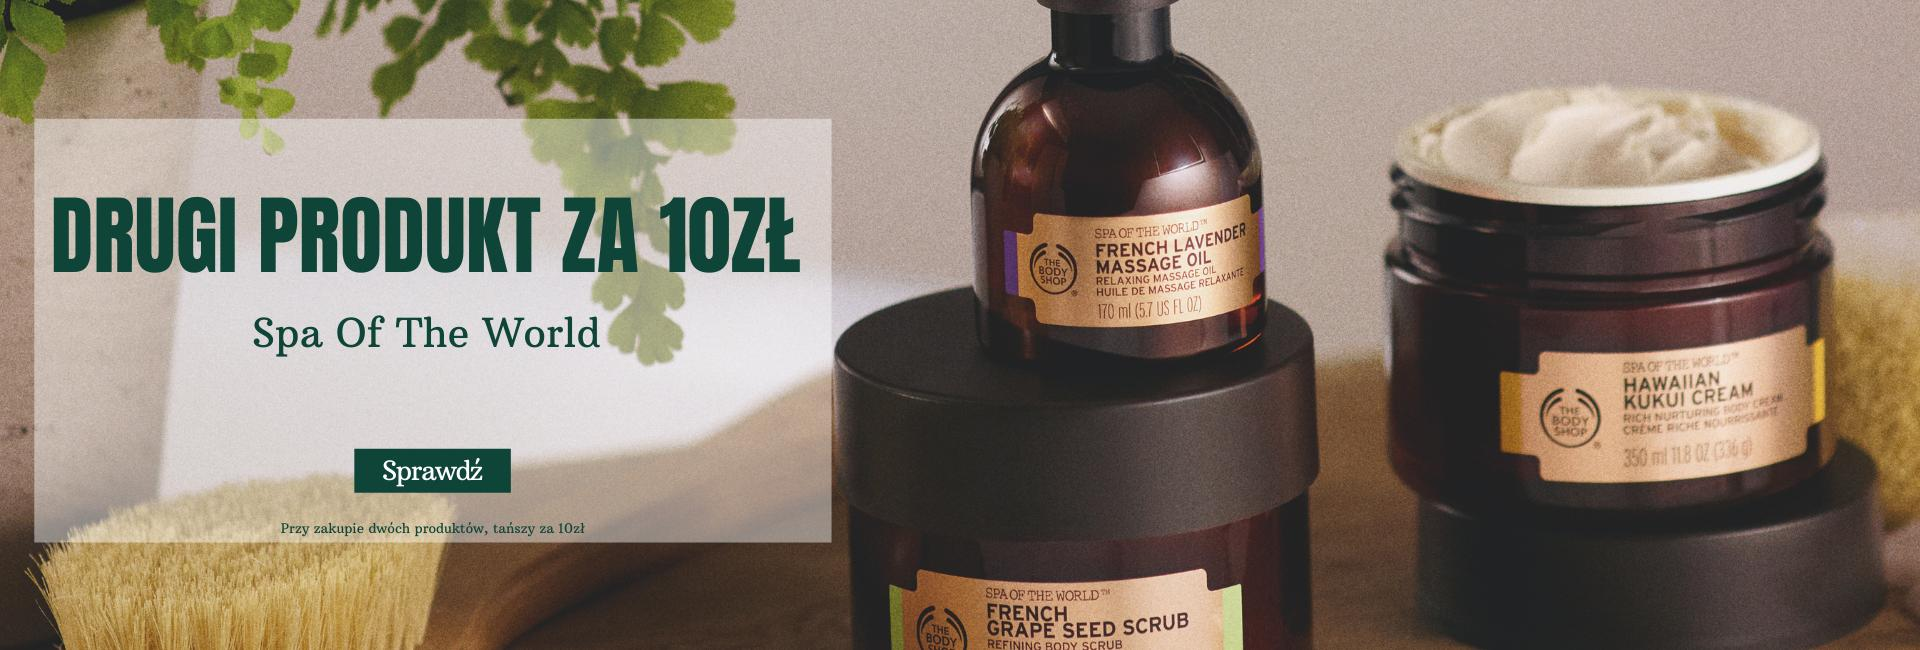 The Body Shop: drugi kosmetyk do ciała z linii Spa of the World za 10 zł